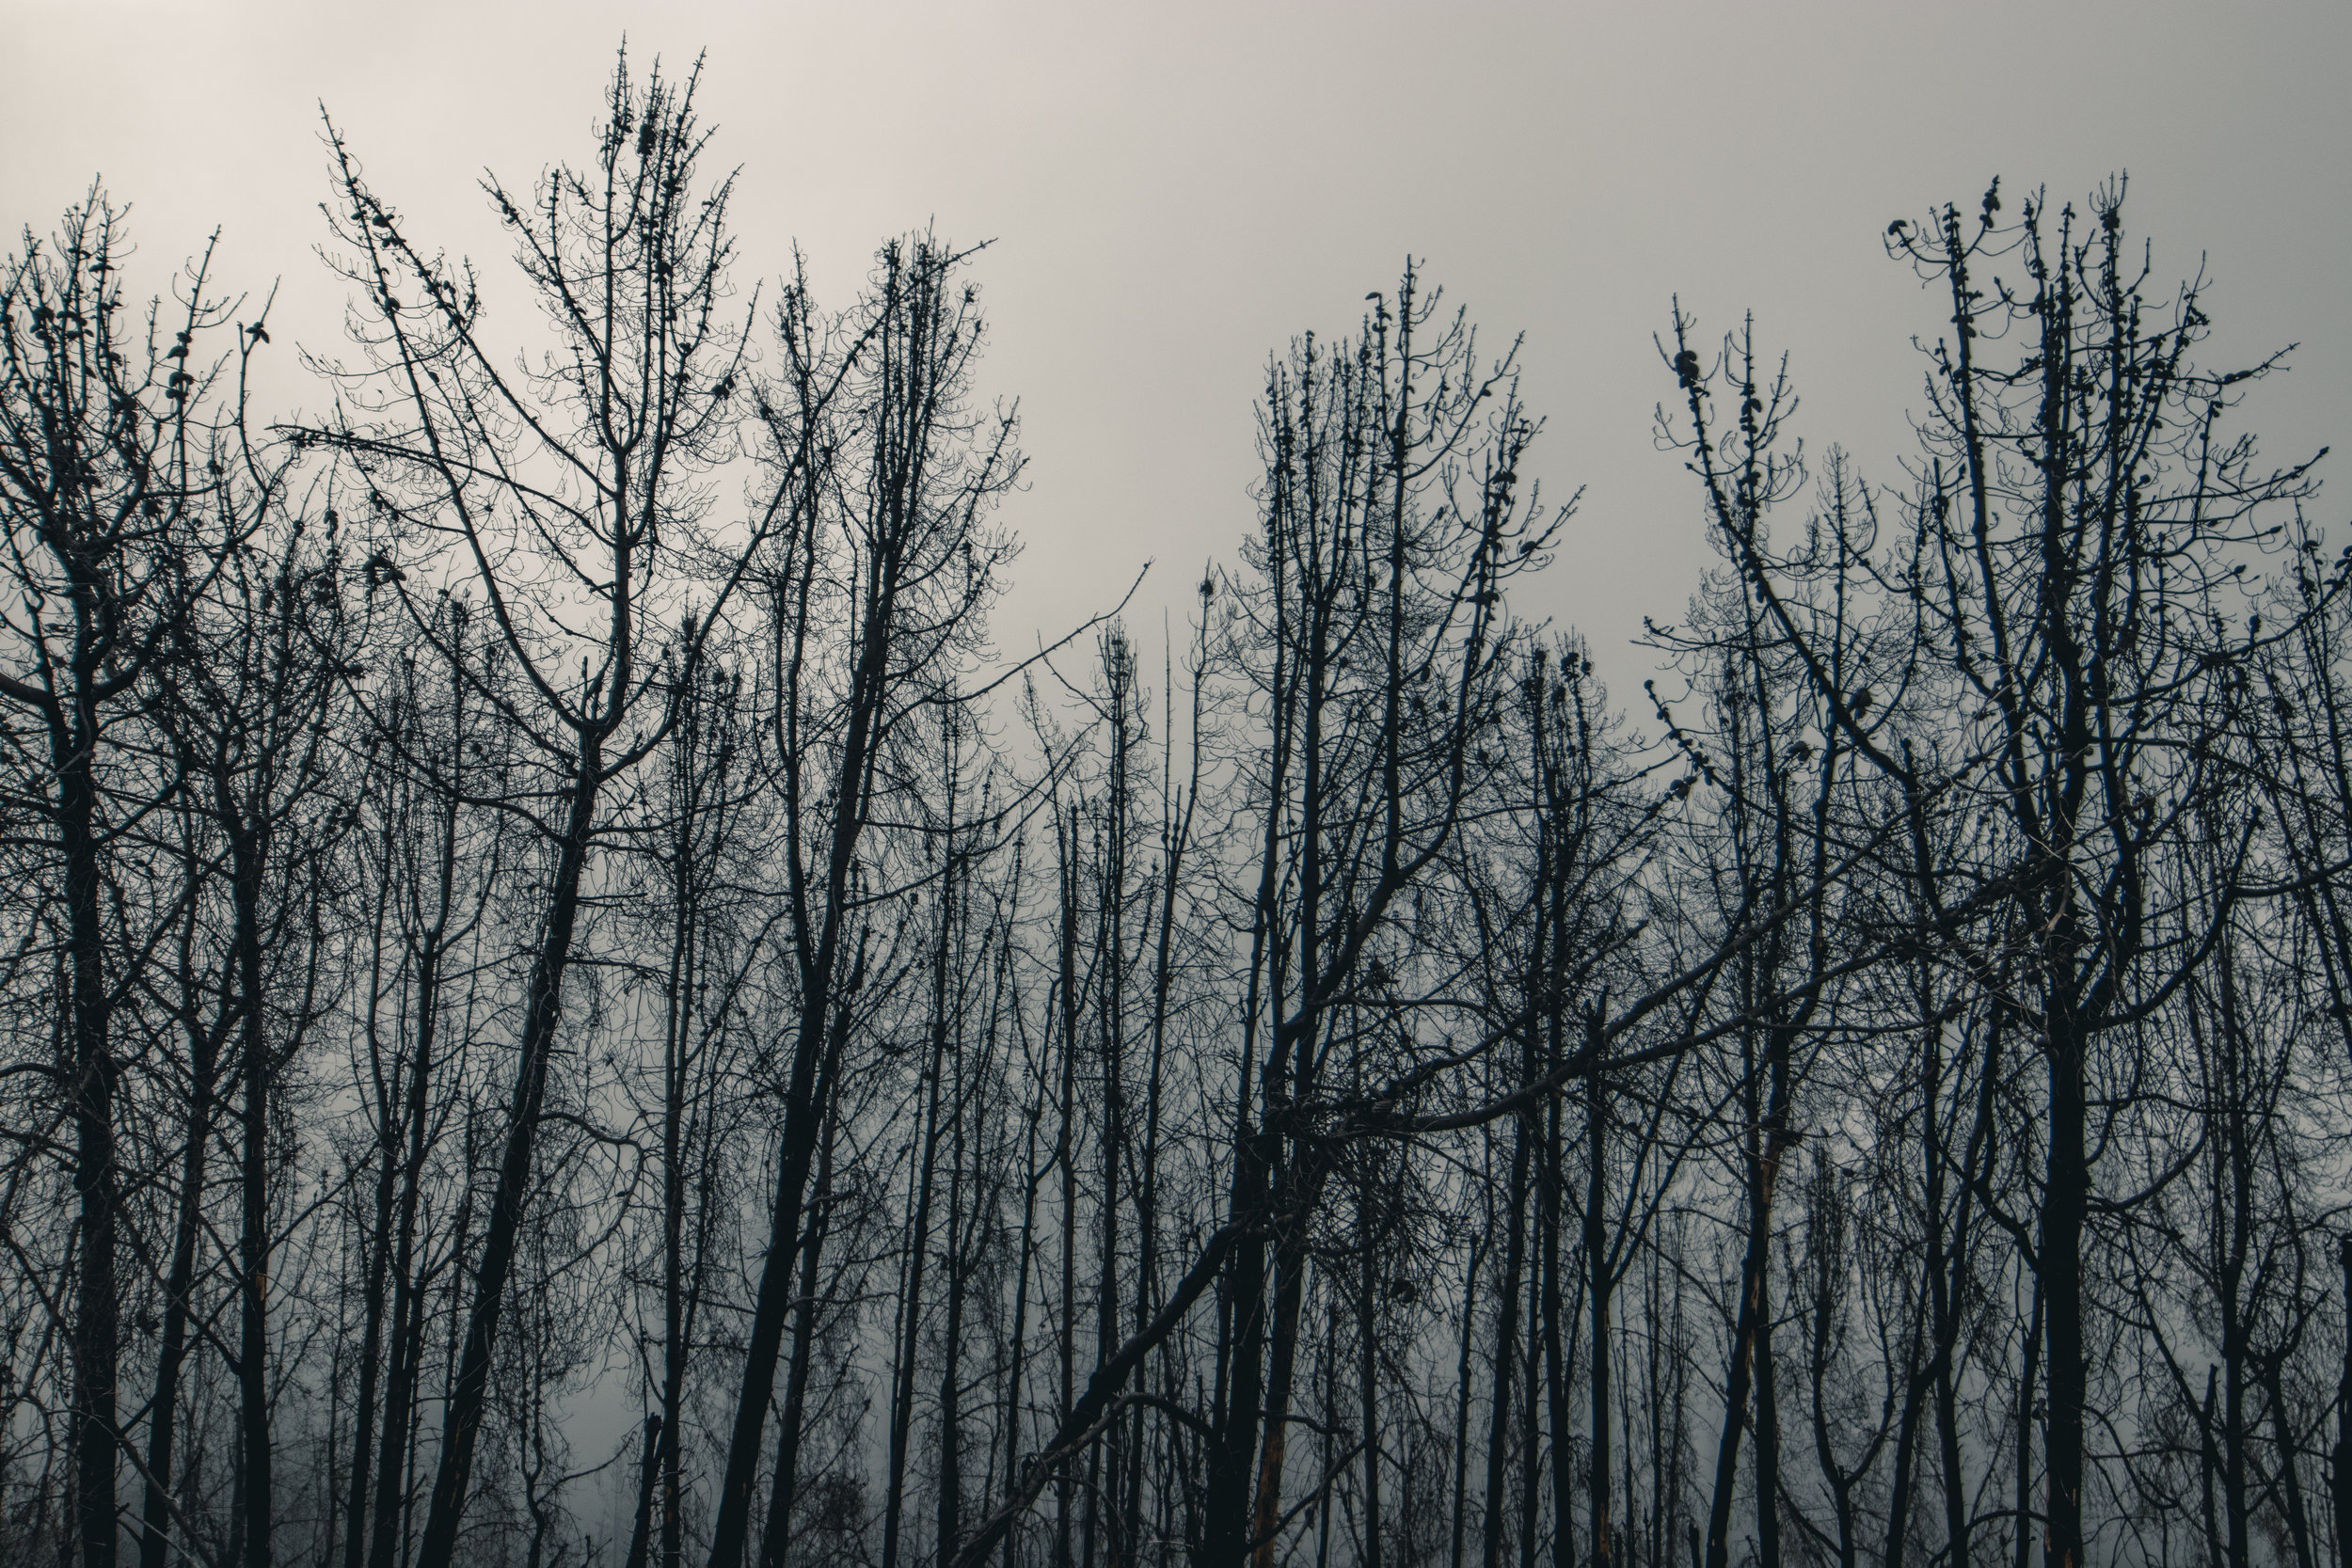 Forest Burned by Wildfire